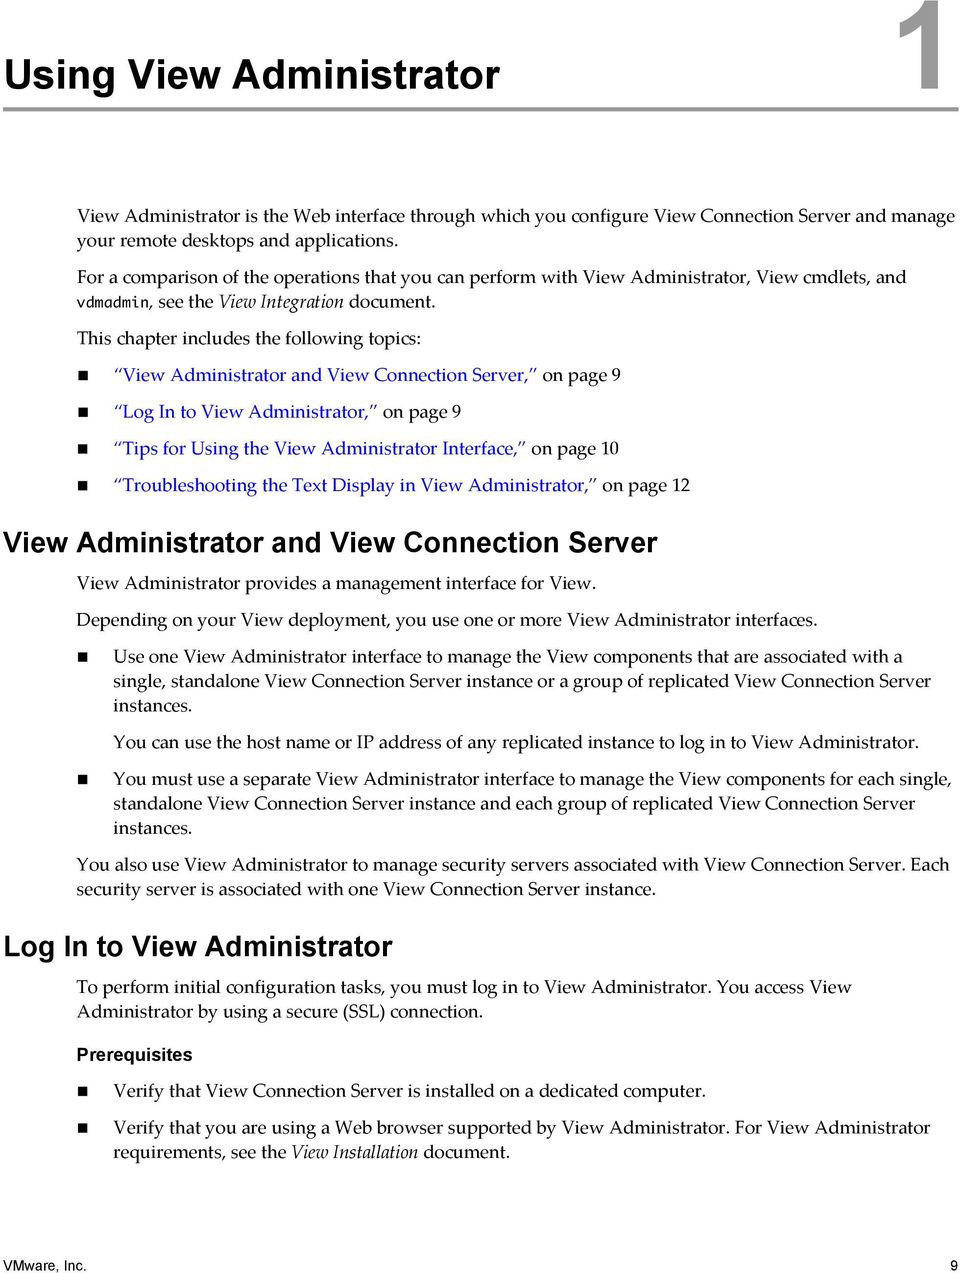 This chapter includes the following topics: View Administrator and View Connection Server, on page 9 Log In to View Administrator, on page 9 Tips for Using the View Administrator Interface, on page